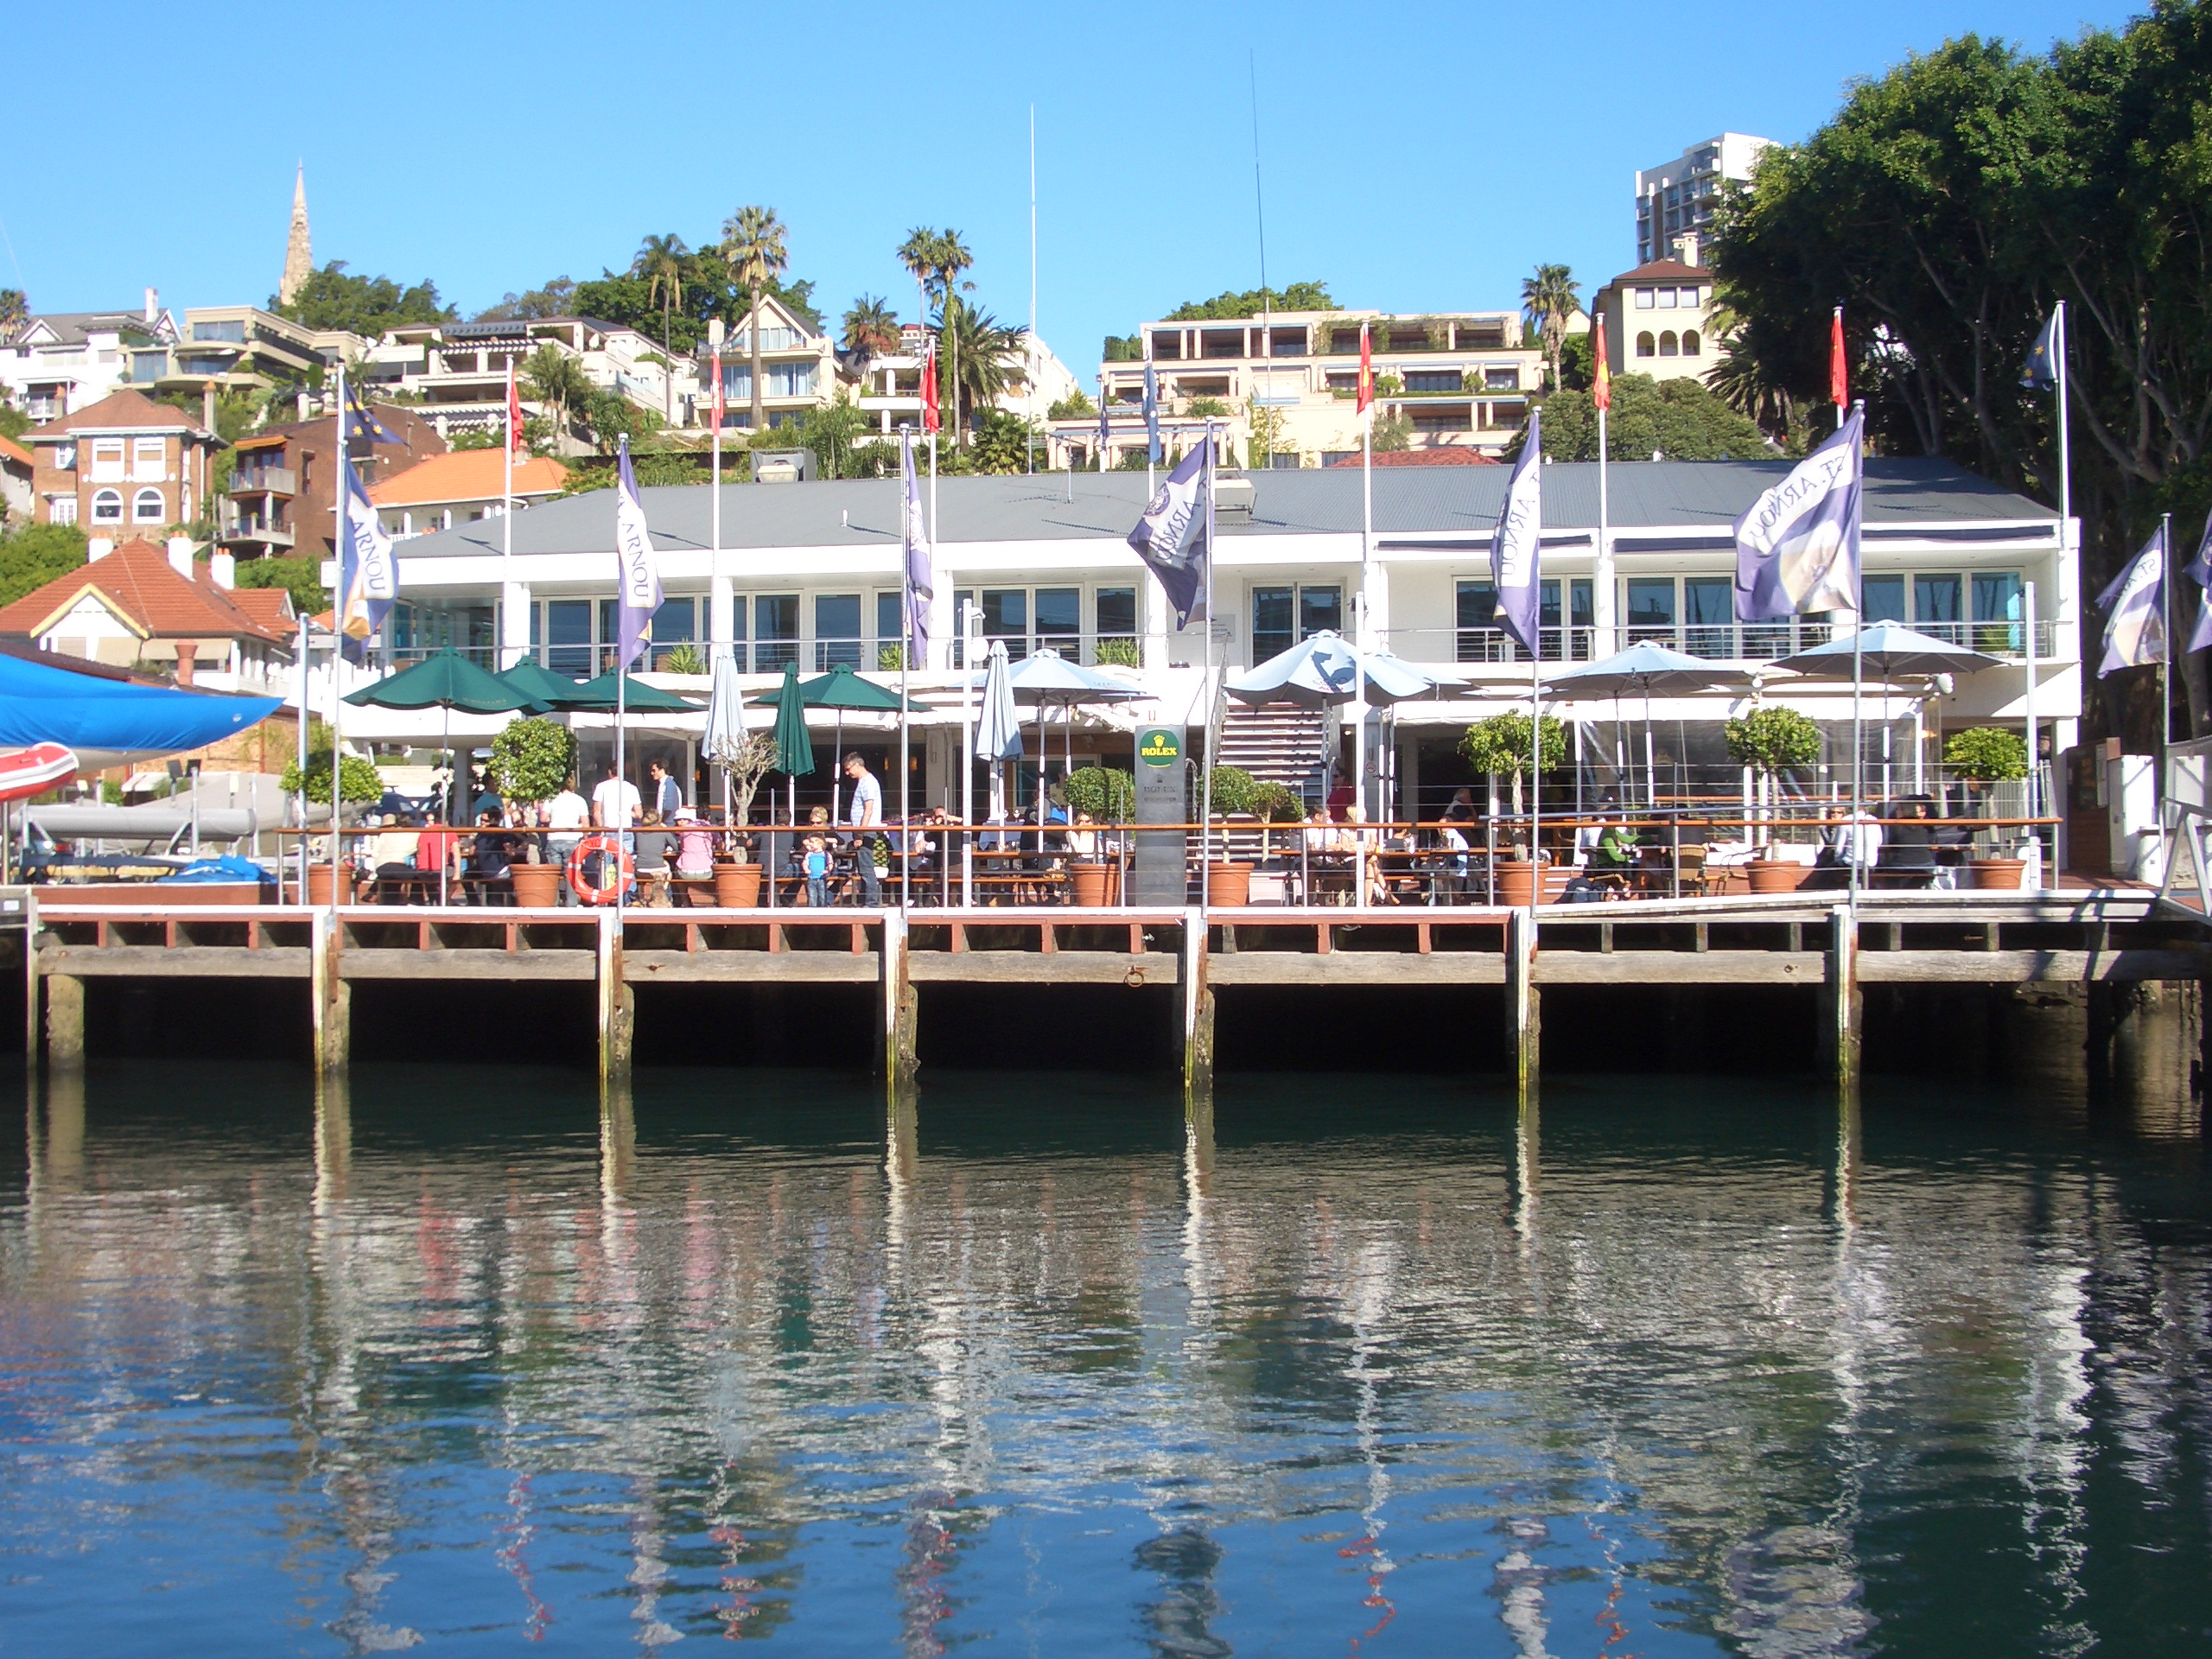 Yacht Club Hotel Picton Restaurant Deal New Zealand